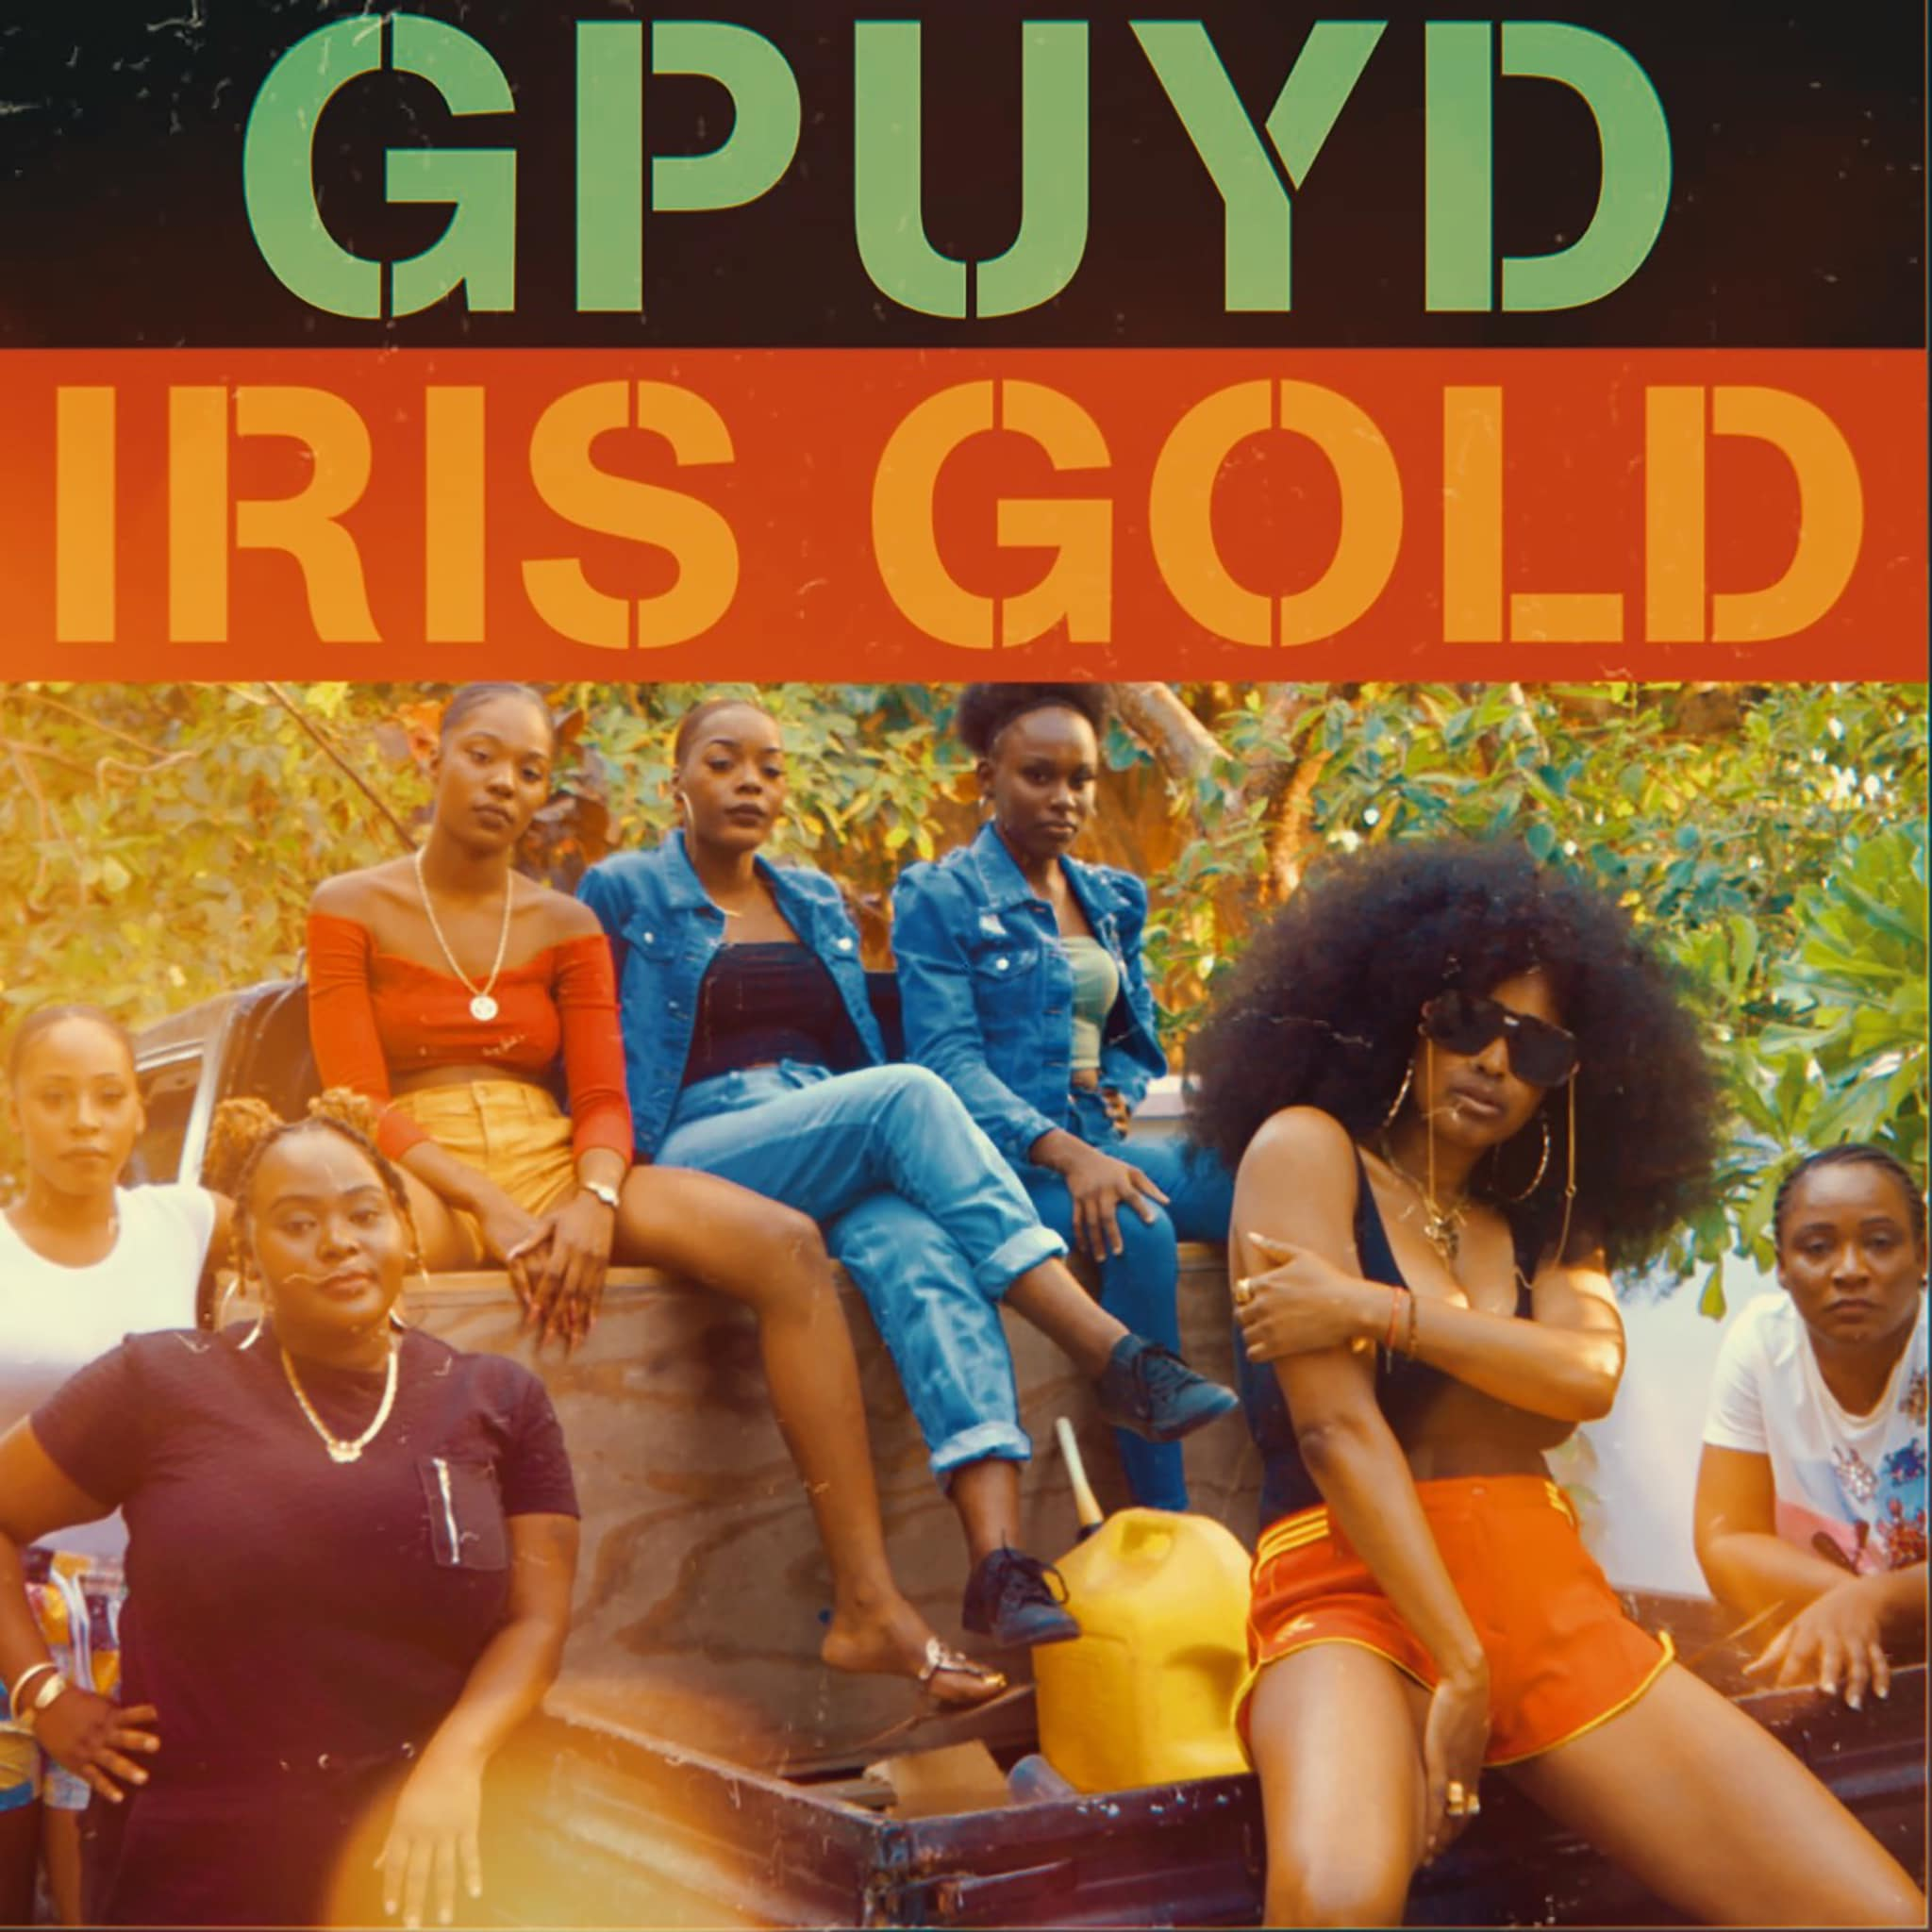 6723 - Dave Stewart And Iris Gold - Girl Pick Up Your Drum - Worldwide - Download - None